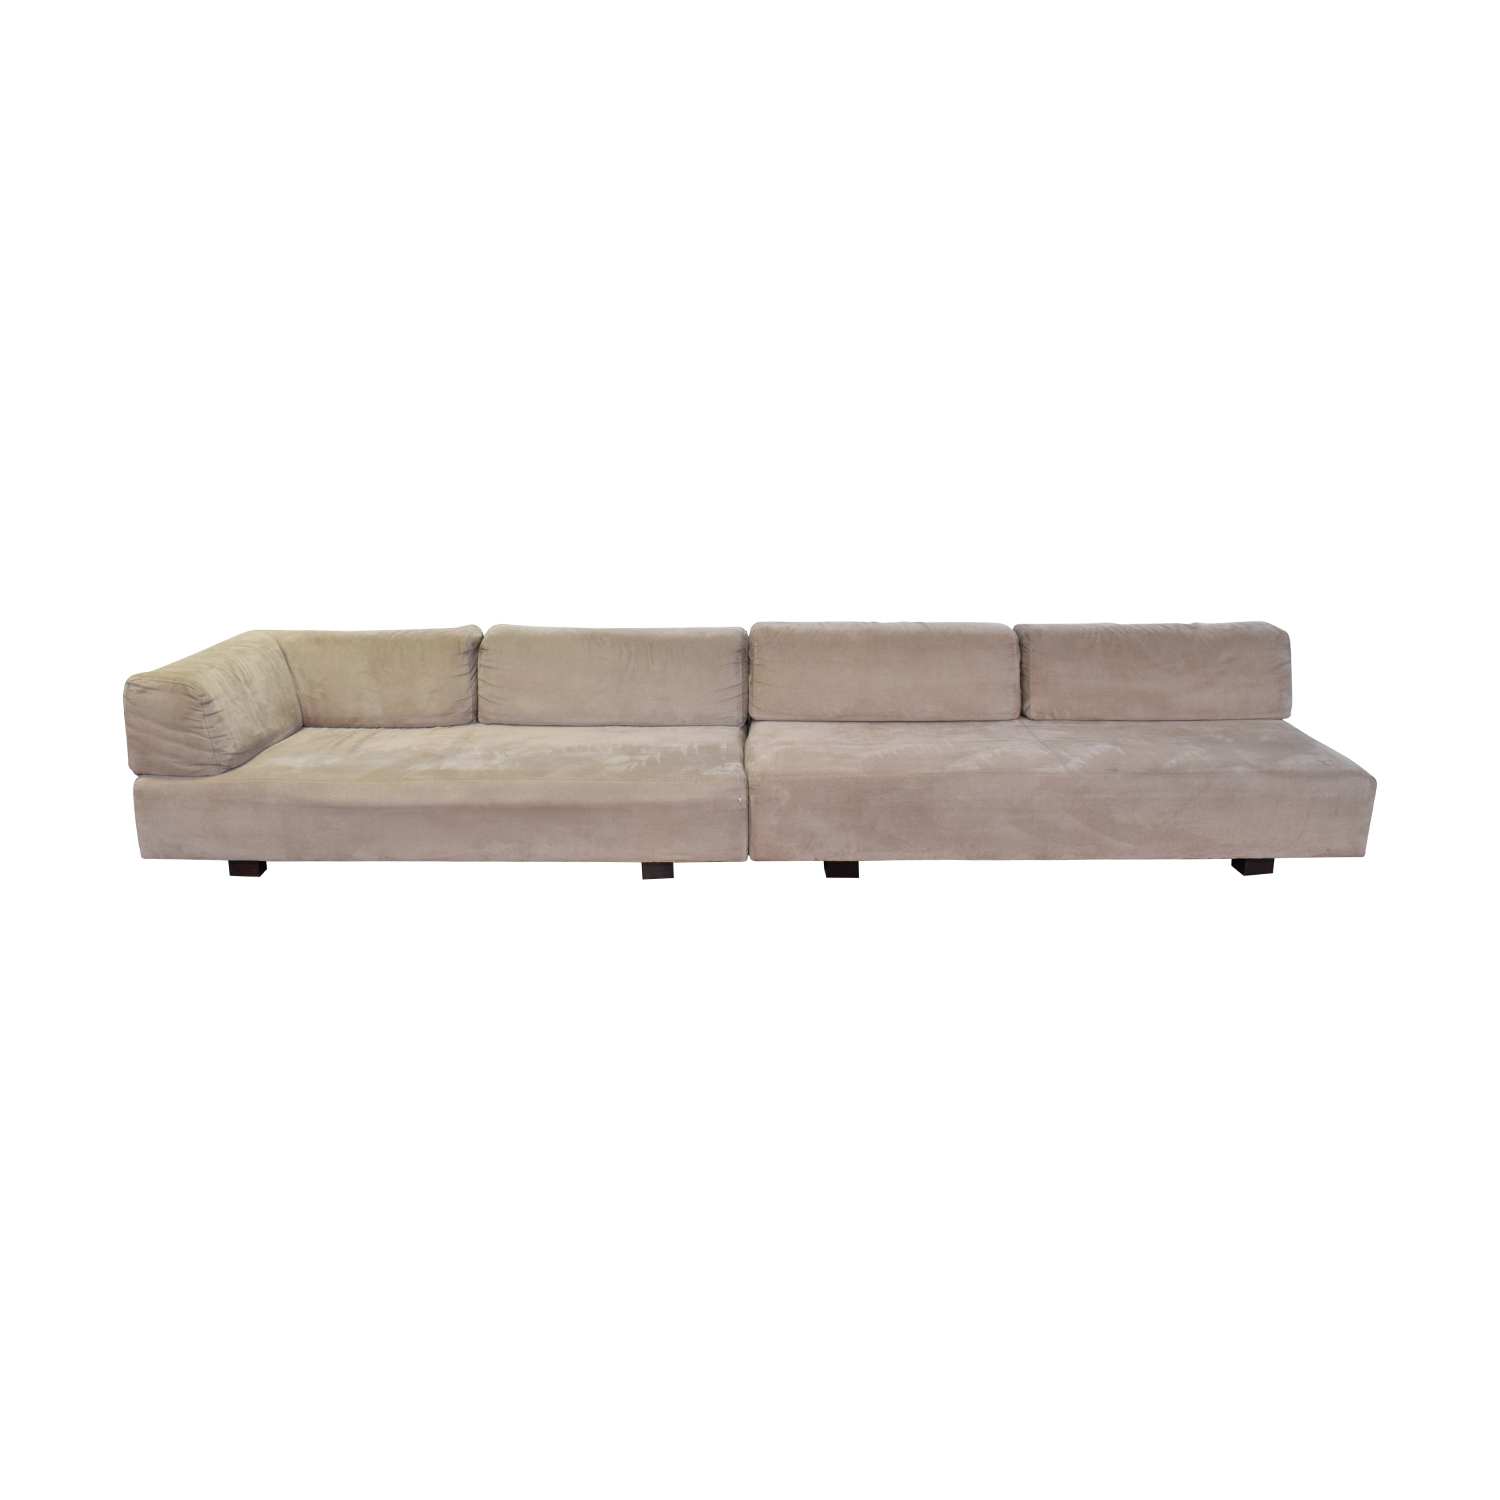 Sofa L Shape Dimensions 59 Off West Elm West Elm Tillary Beige L Shaped Sectional Sofas